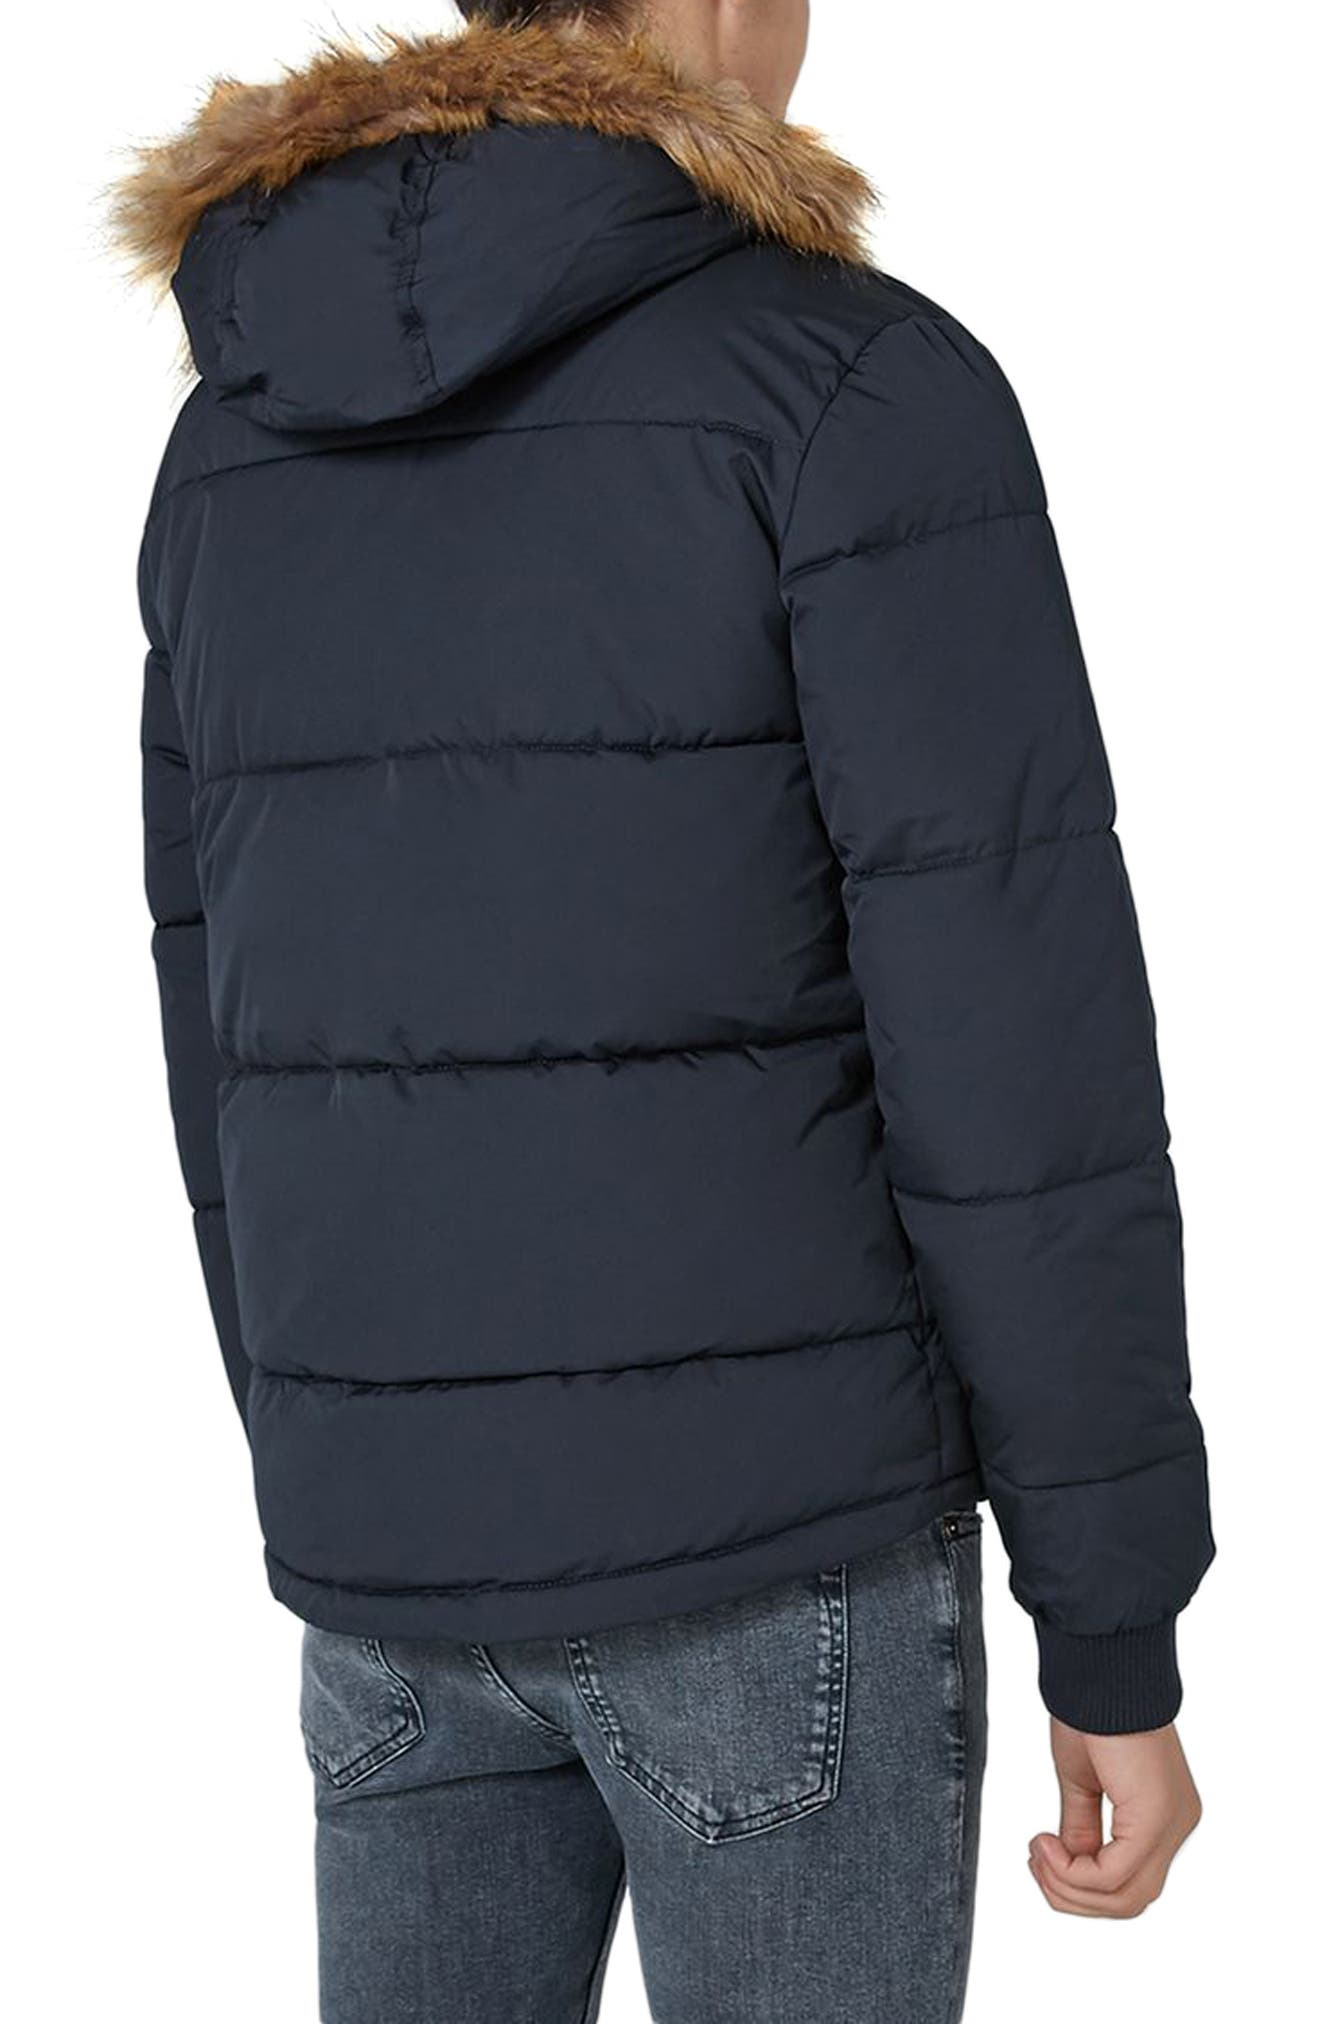 Maguire Hooded Puffer Coat with Faux Fur Trim,                             Alternate thumbnail 2, color,                             410